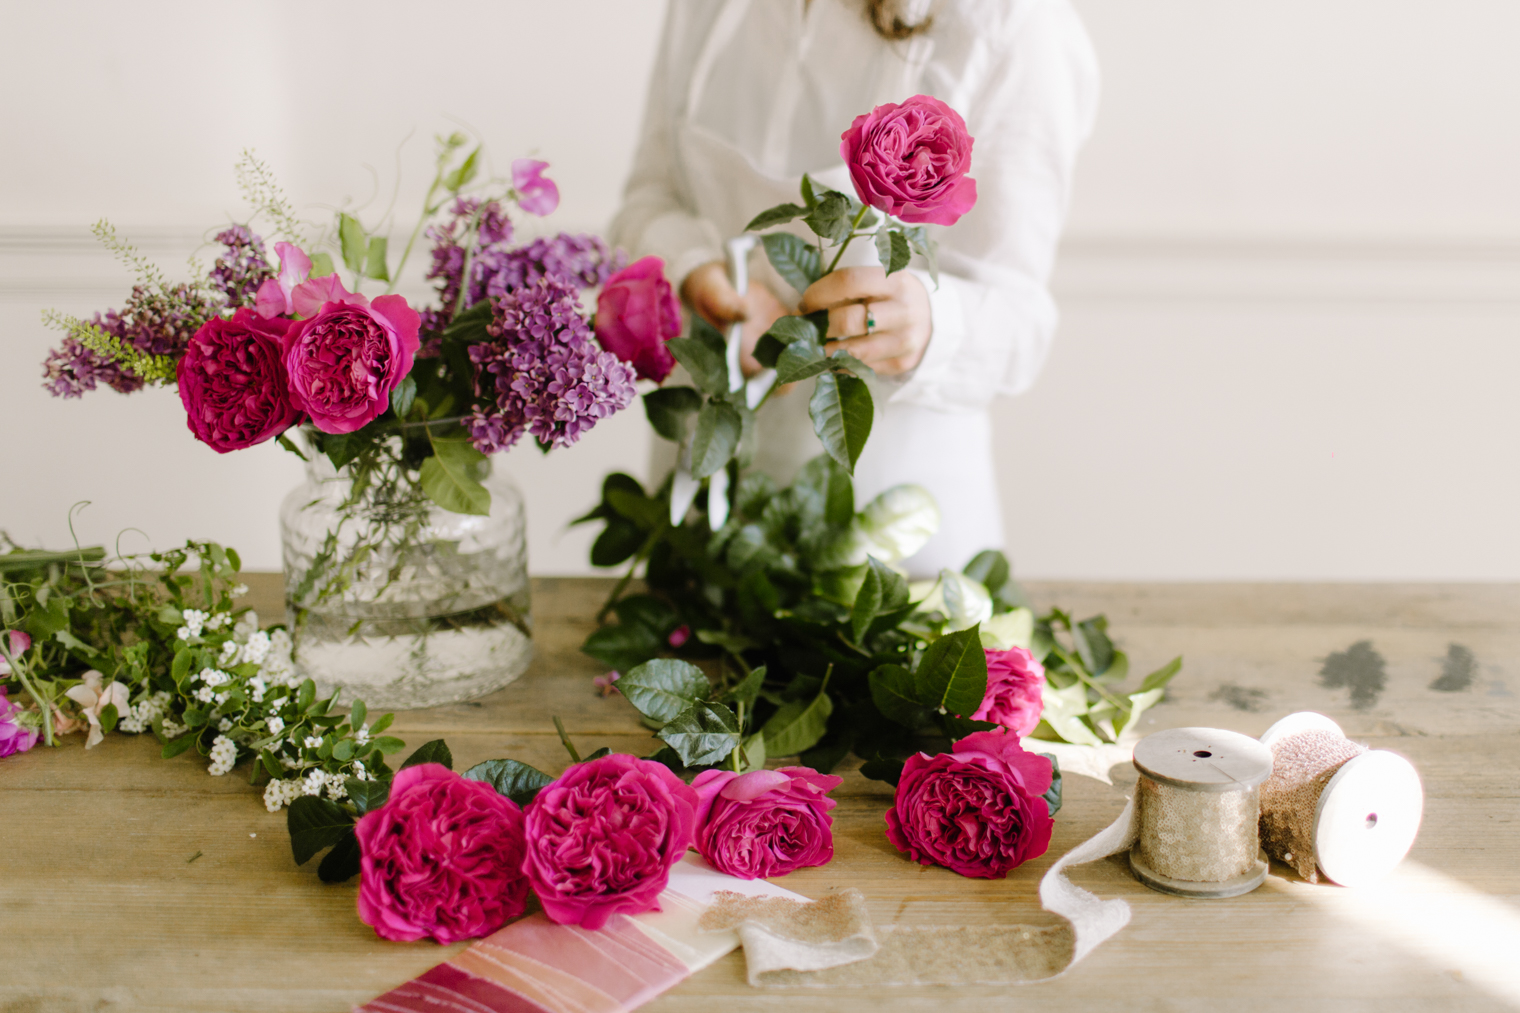 David Austin Wedding Roses | From Bud to Open Bloom